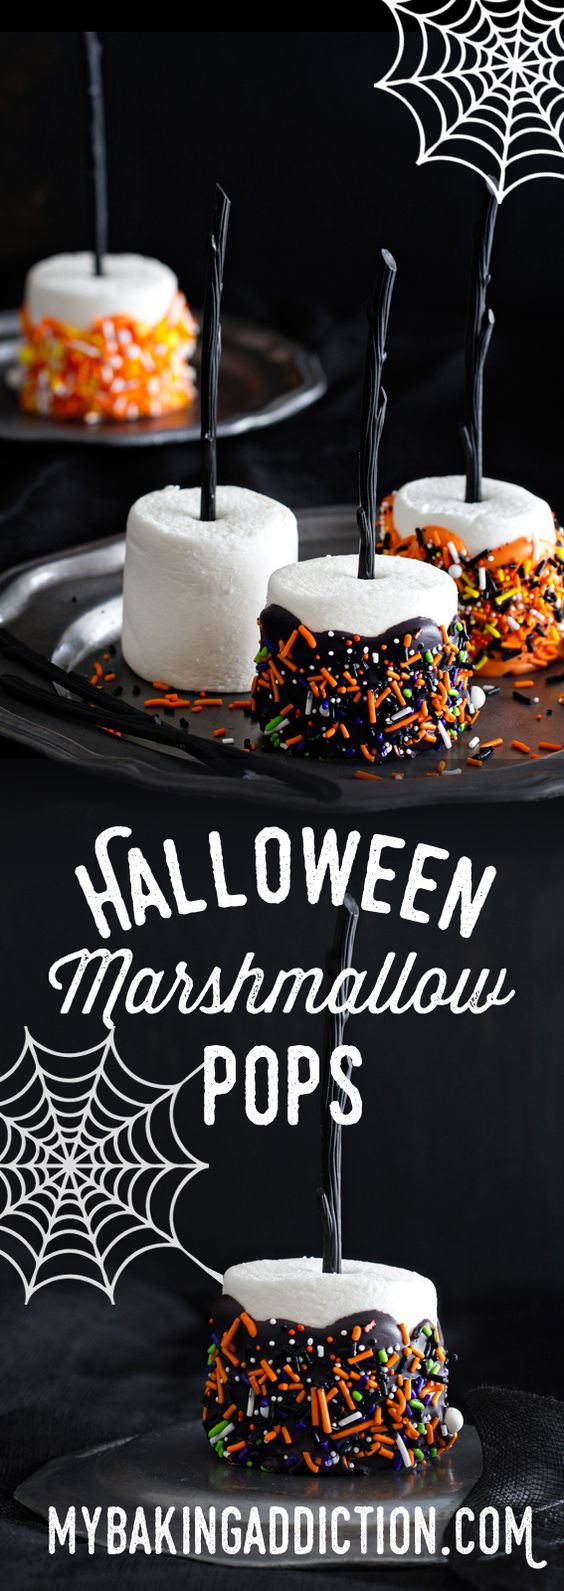 Halloween Marshmallow Pops are the handheld treat you want at your Halloween party. They're simple and adorable! from @bakingaddiction: